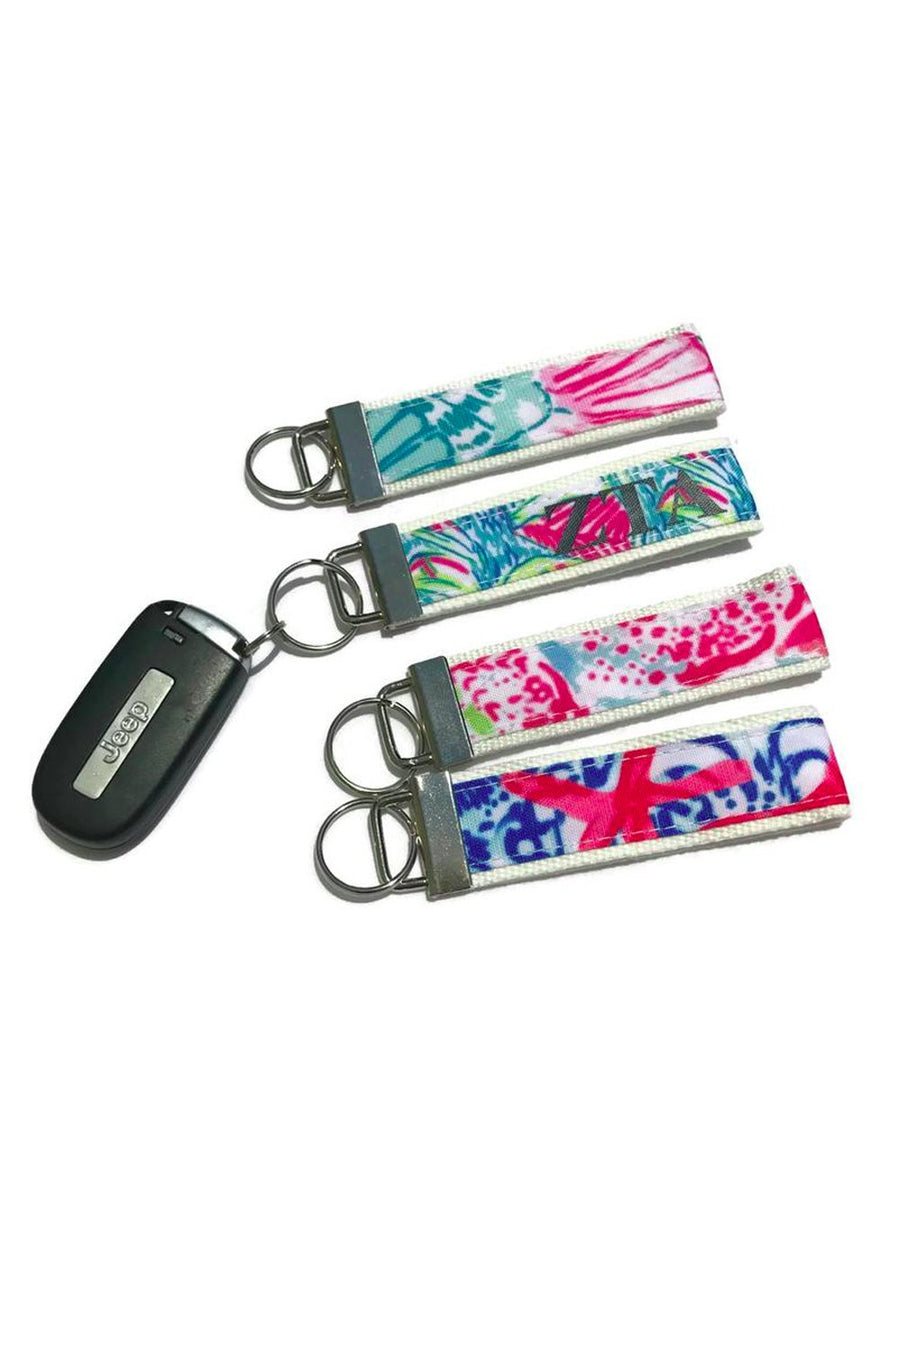 Designer Inspired Key Chain, Accessories, domil, - Sunny and Southern,